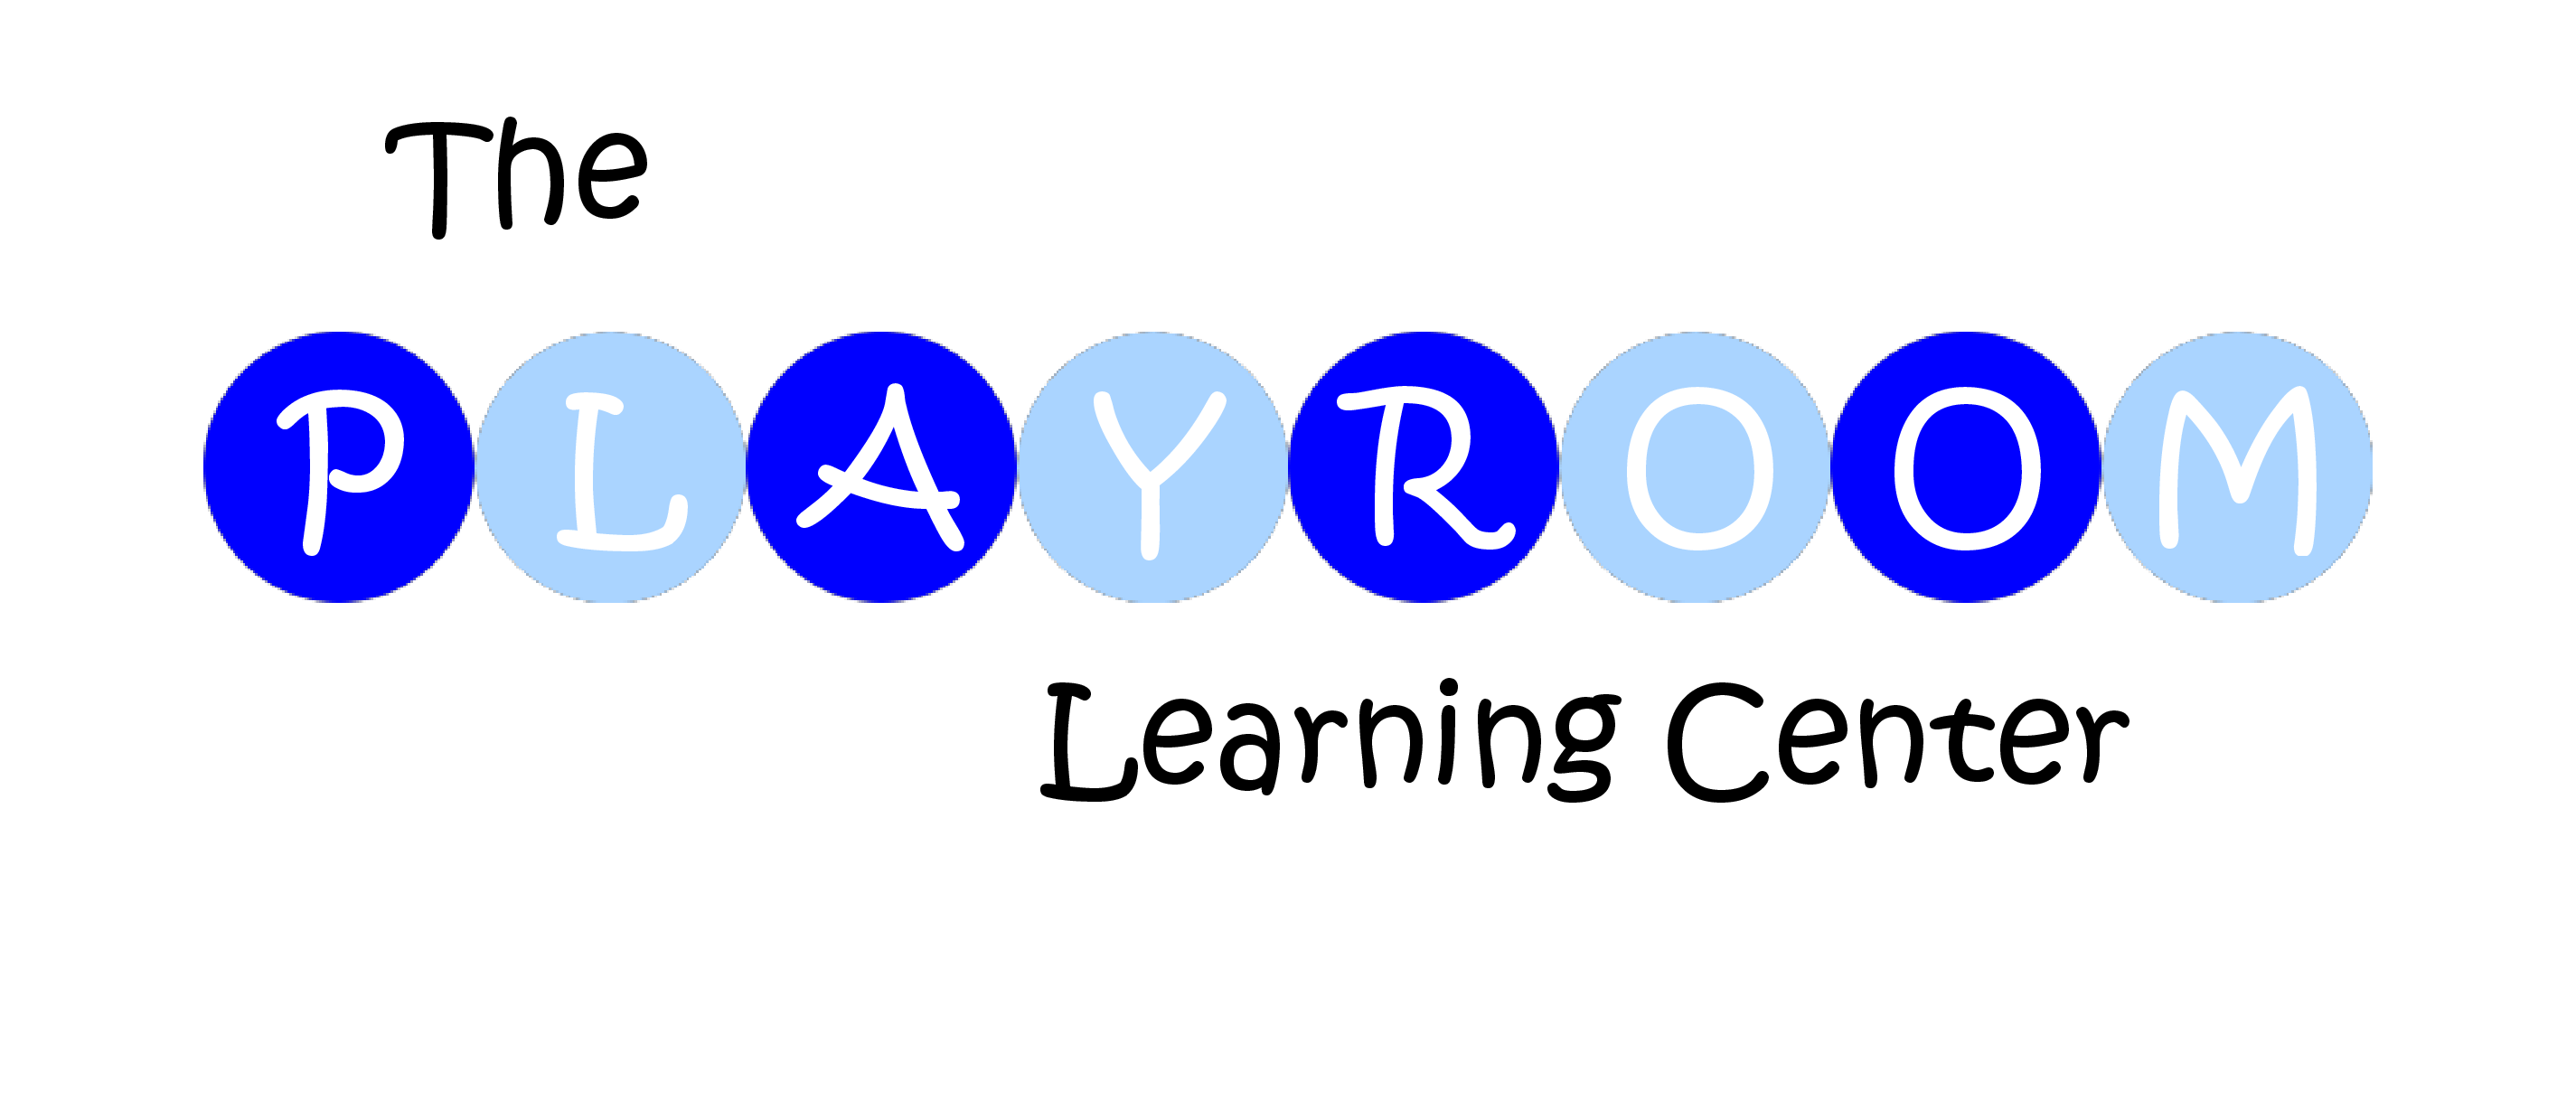 The Playroom Learning Center